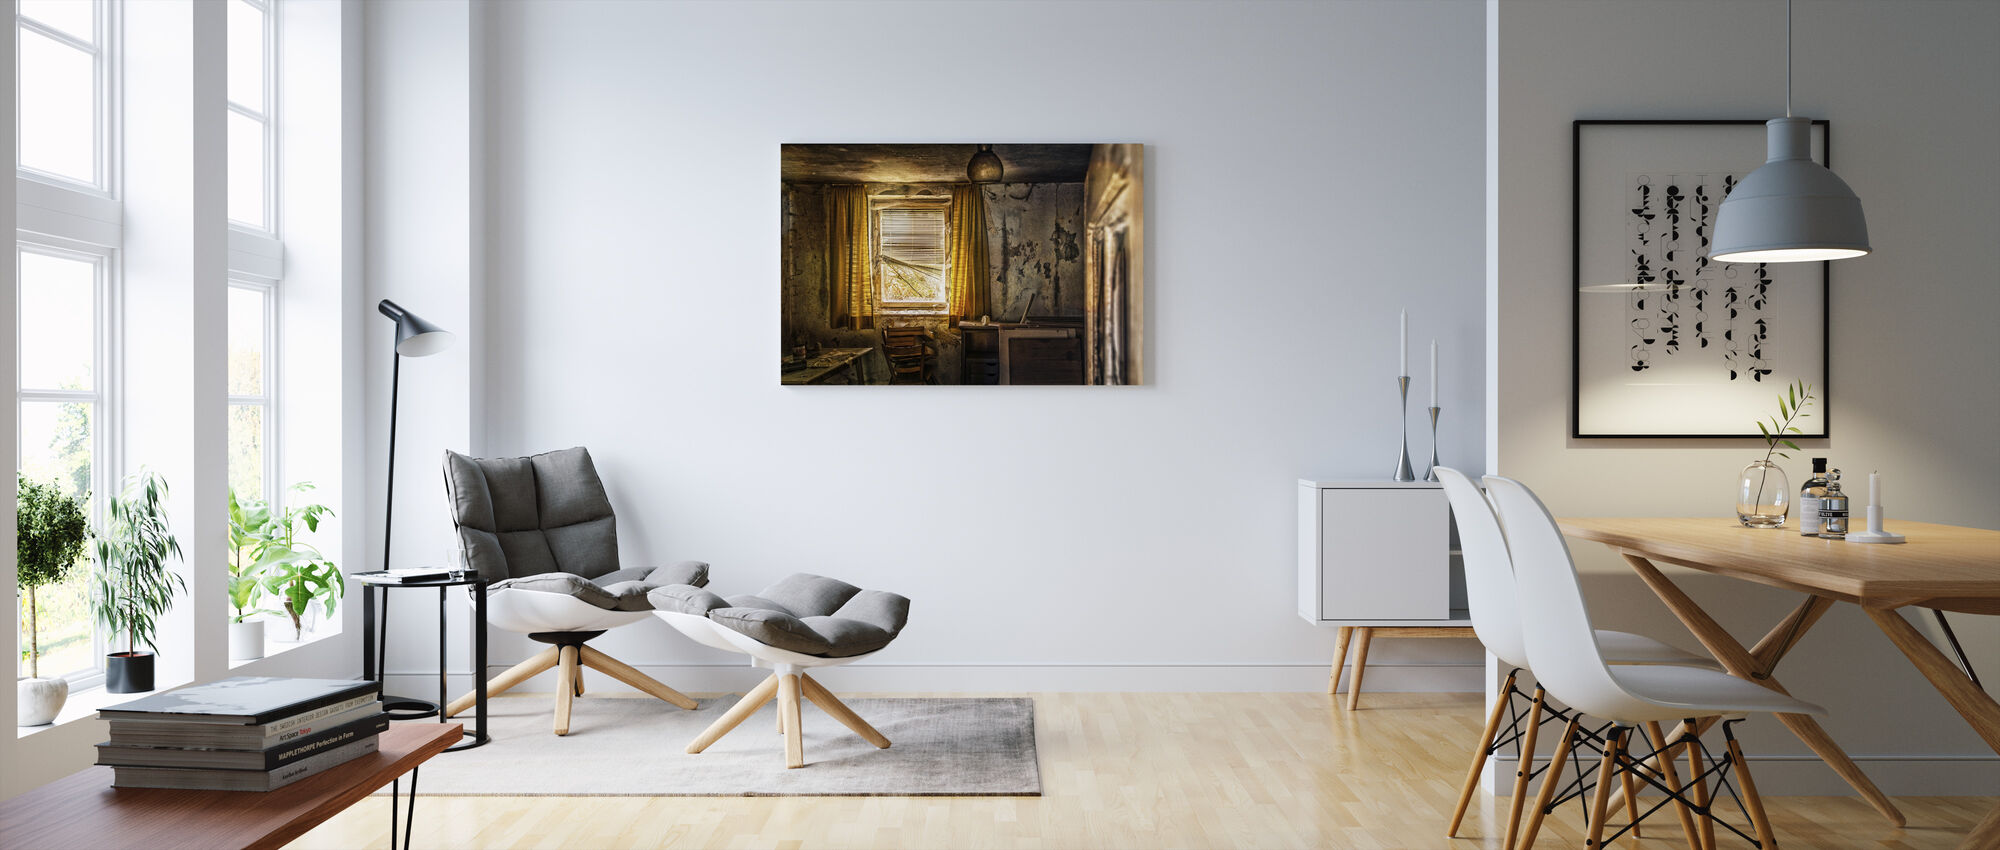 Abandoned Room - Canvas print - Living Room